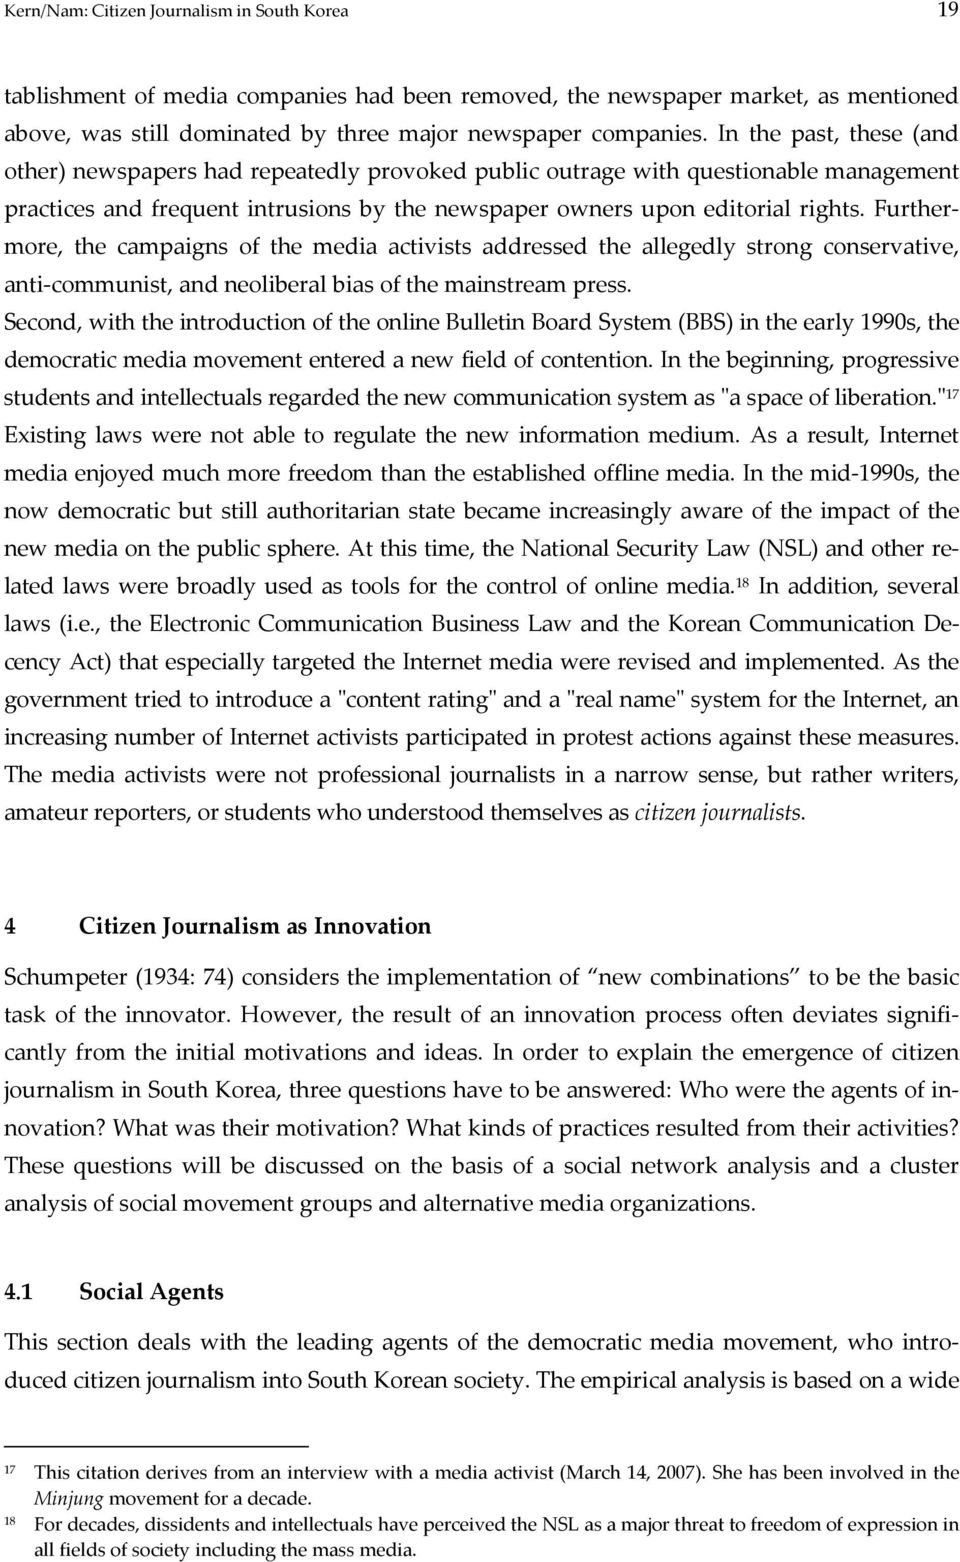 Furthermore, the campaigns of the media activists addressed the allegedly strong conservative, anti-communist, and neoliberal bias of the mainstream press.